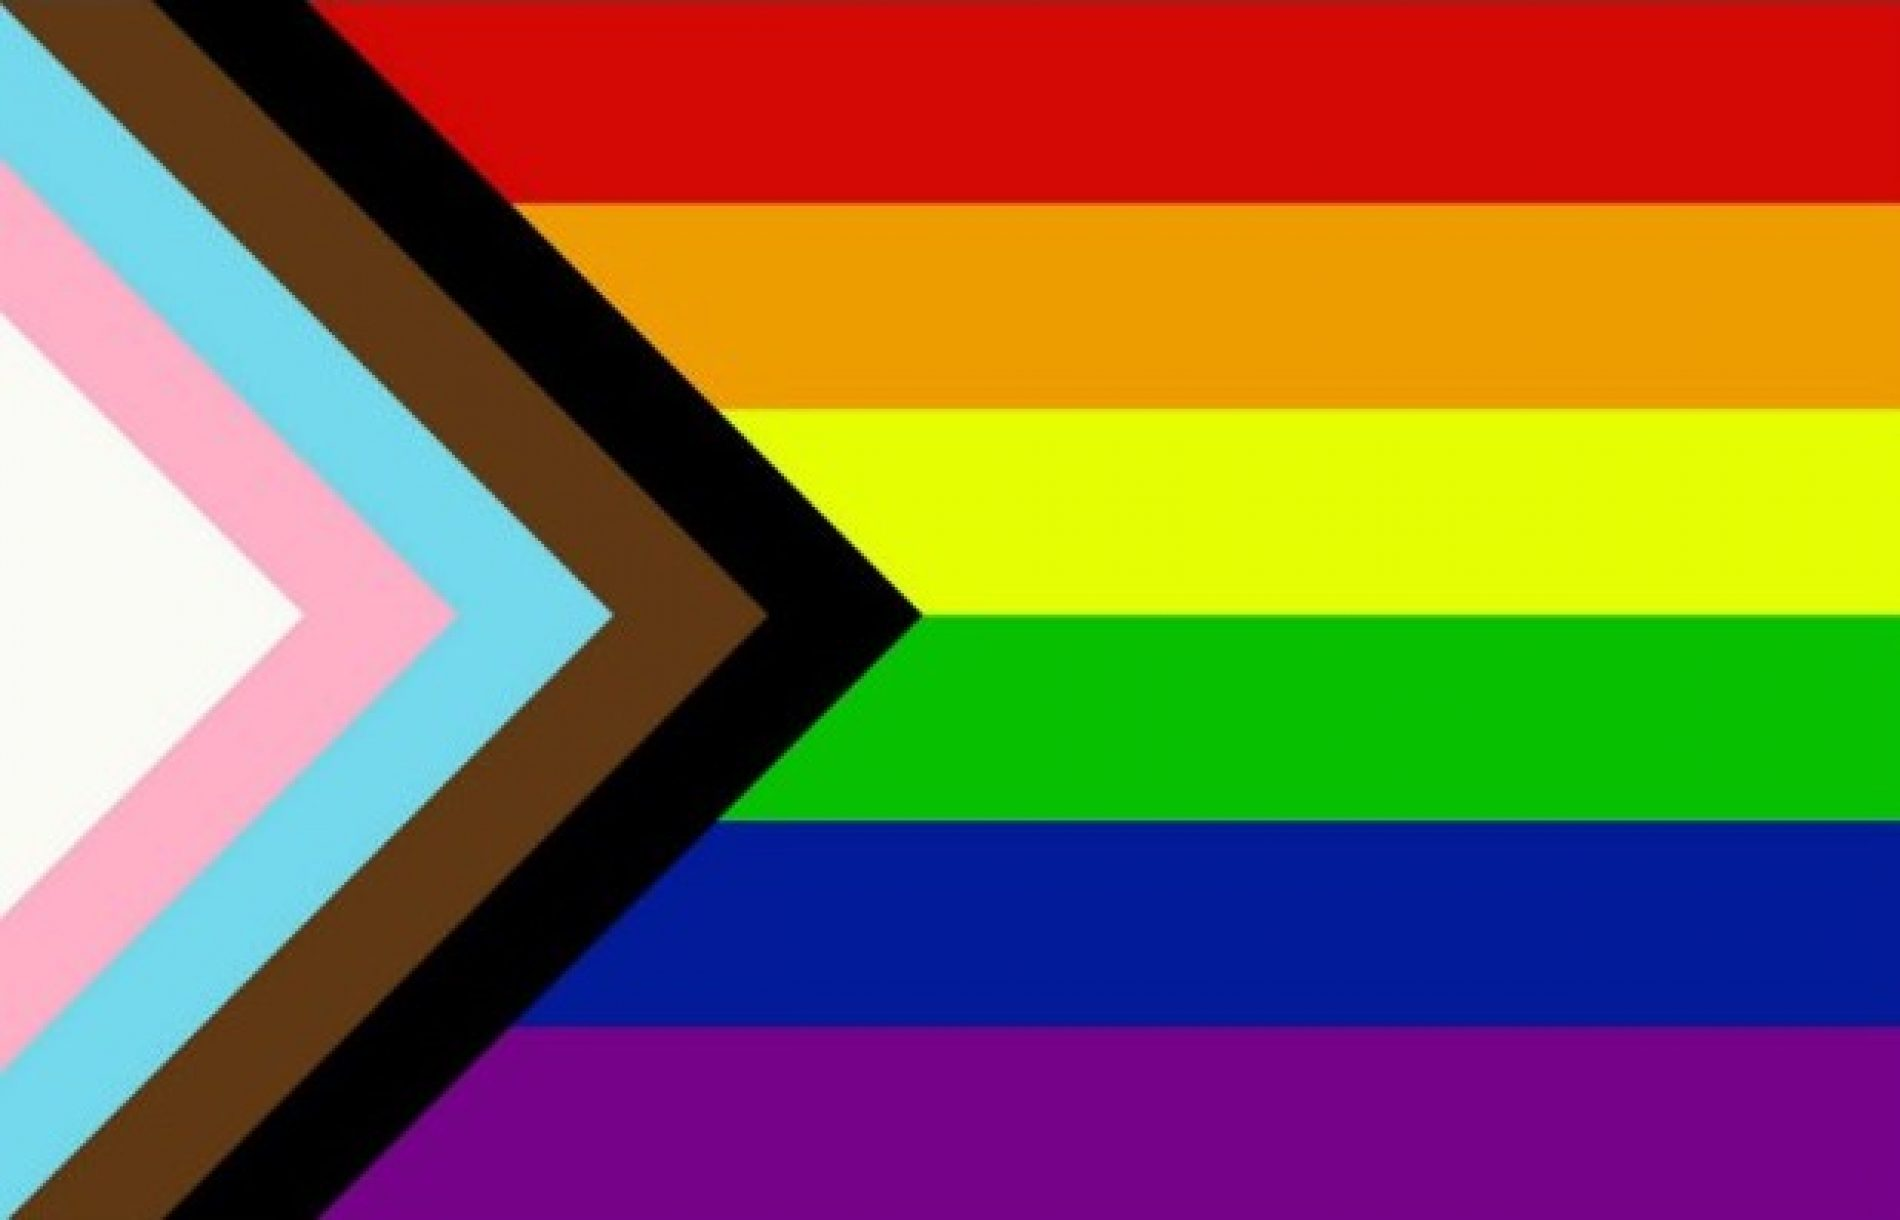 Could this become the new Pride flag?